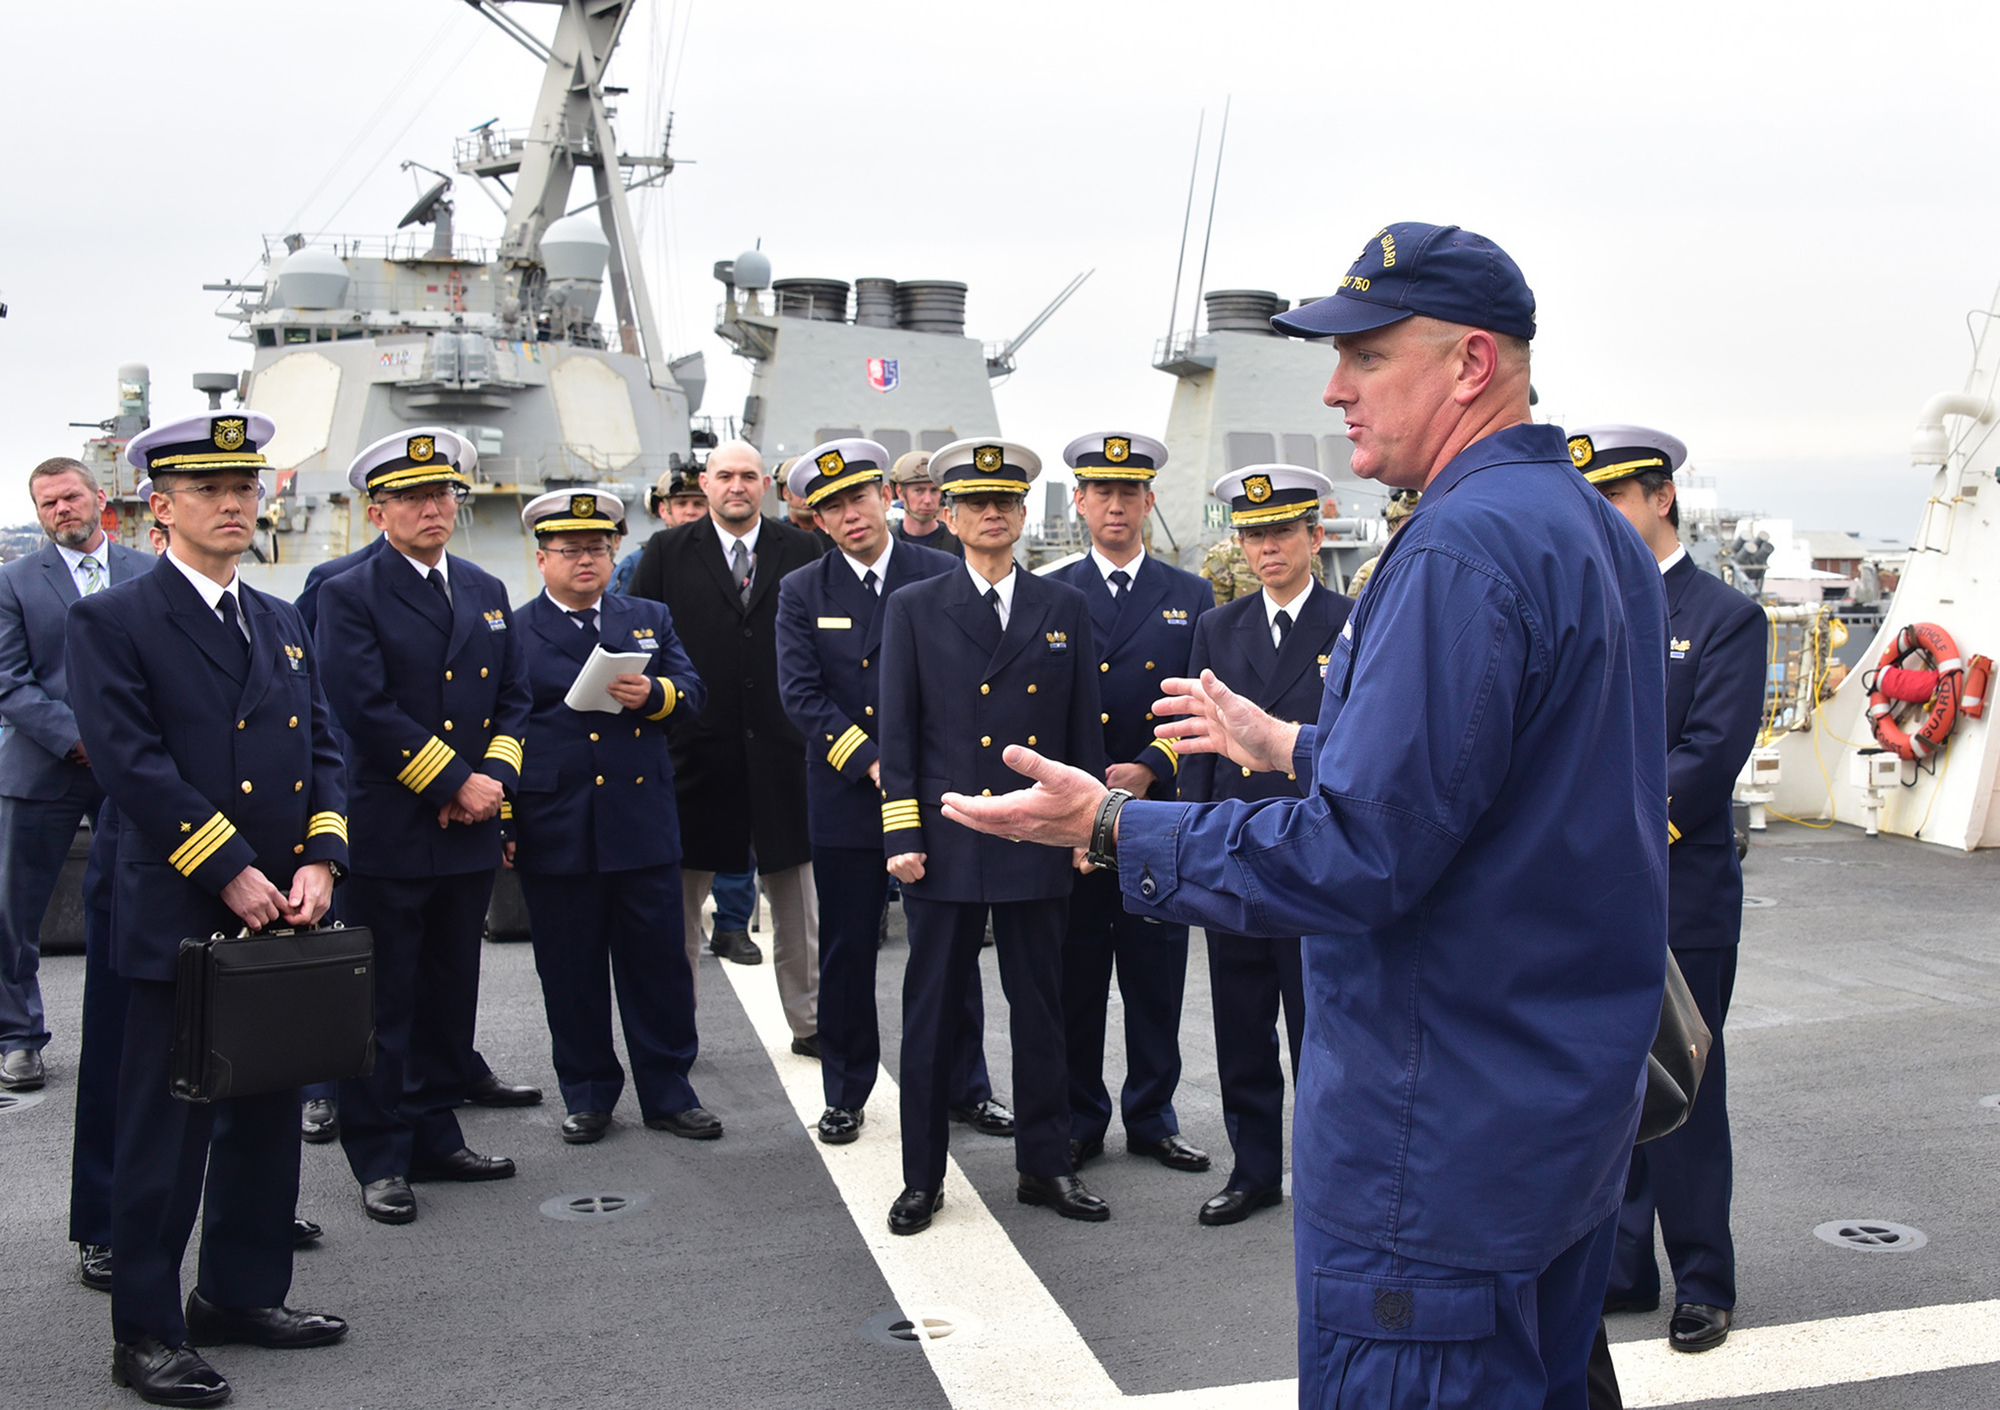 Capt. John Driscoll, commanding officer of U.S. Coast Guard Cutter Bertholf (WMSL 750), addresses officers from Japan coast guard on the ship's flight deck Feb. 7, 2019. Bertholf is on a deployment to the Western Pacific Ocean in support of the U.S. Navy's 7th Fleet. U.S. Coast Guard photo by Chief Petty Officer John Masson